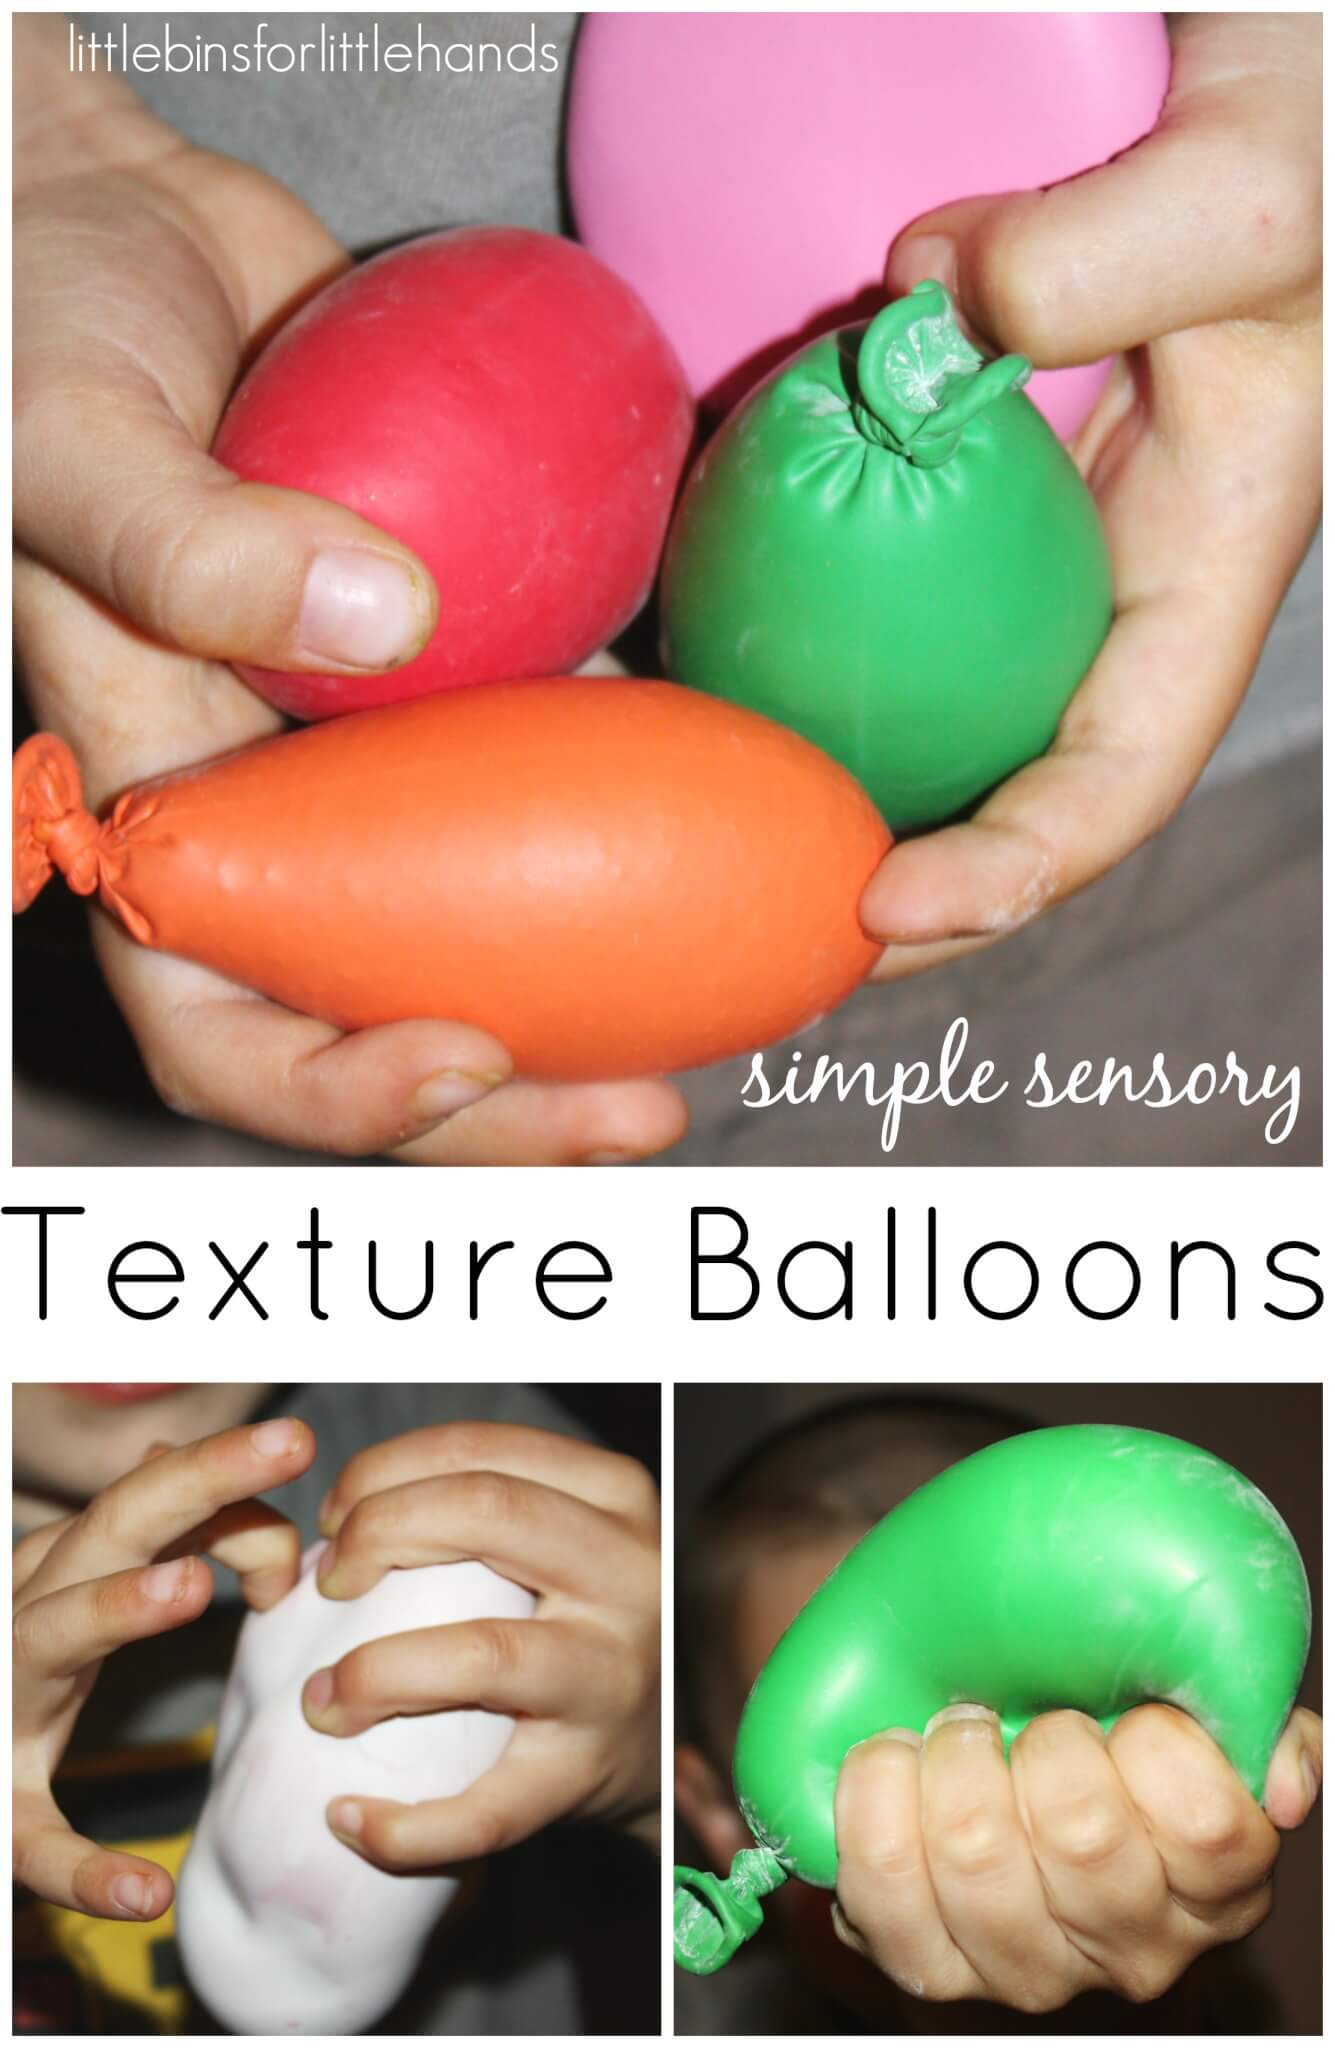 Texture Balloons for Kids Tactile Sensory Play